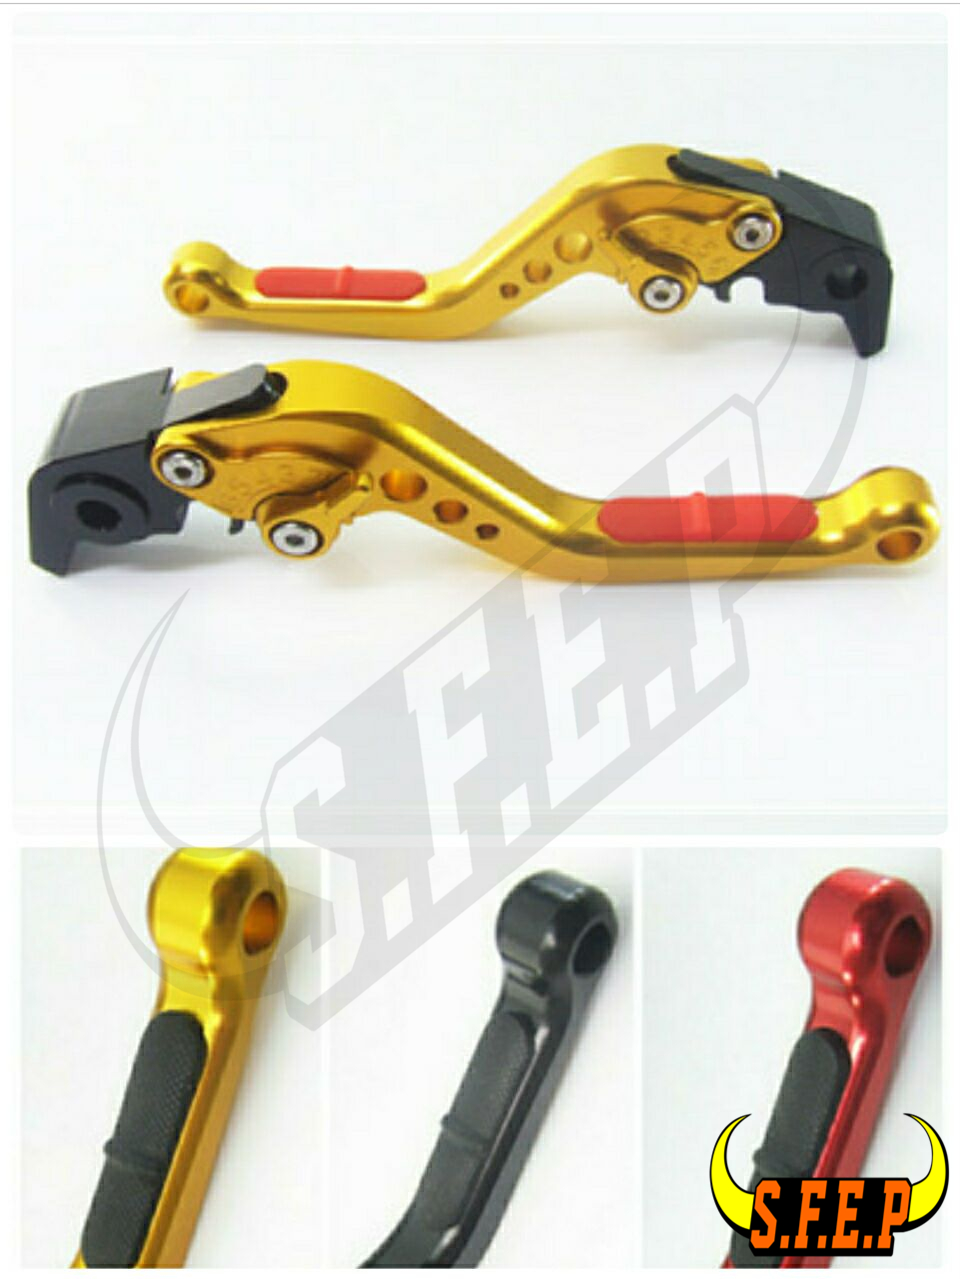 CNC Adjustable Motorcycle Brake and Clutch Levers with Anti-Slip For Ducati 797 MONSTER 2017-2018